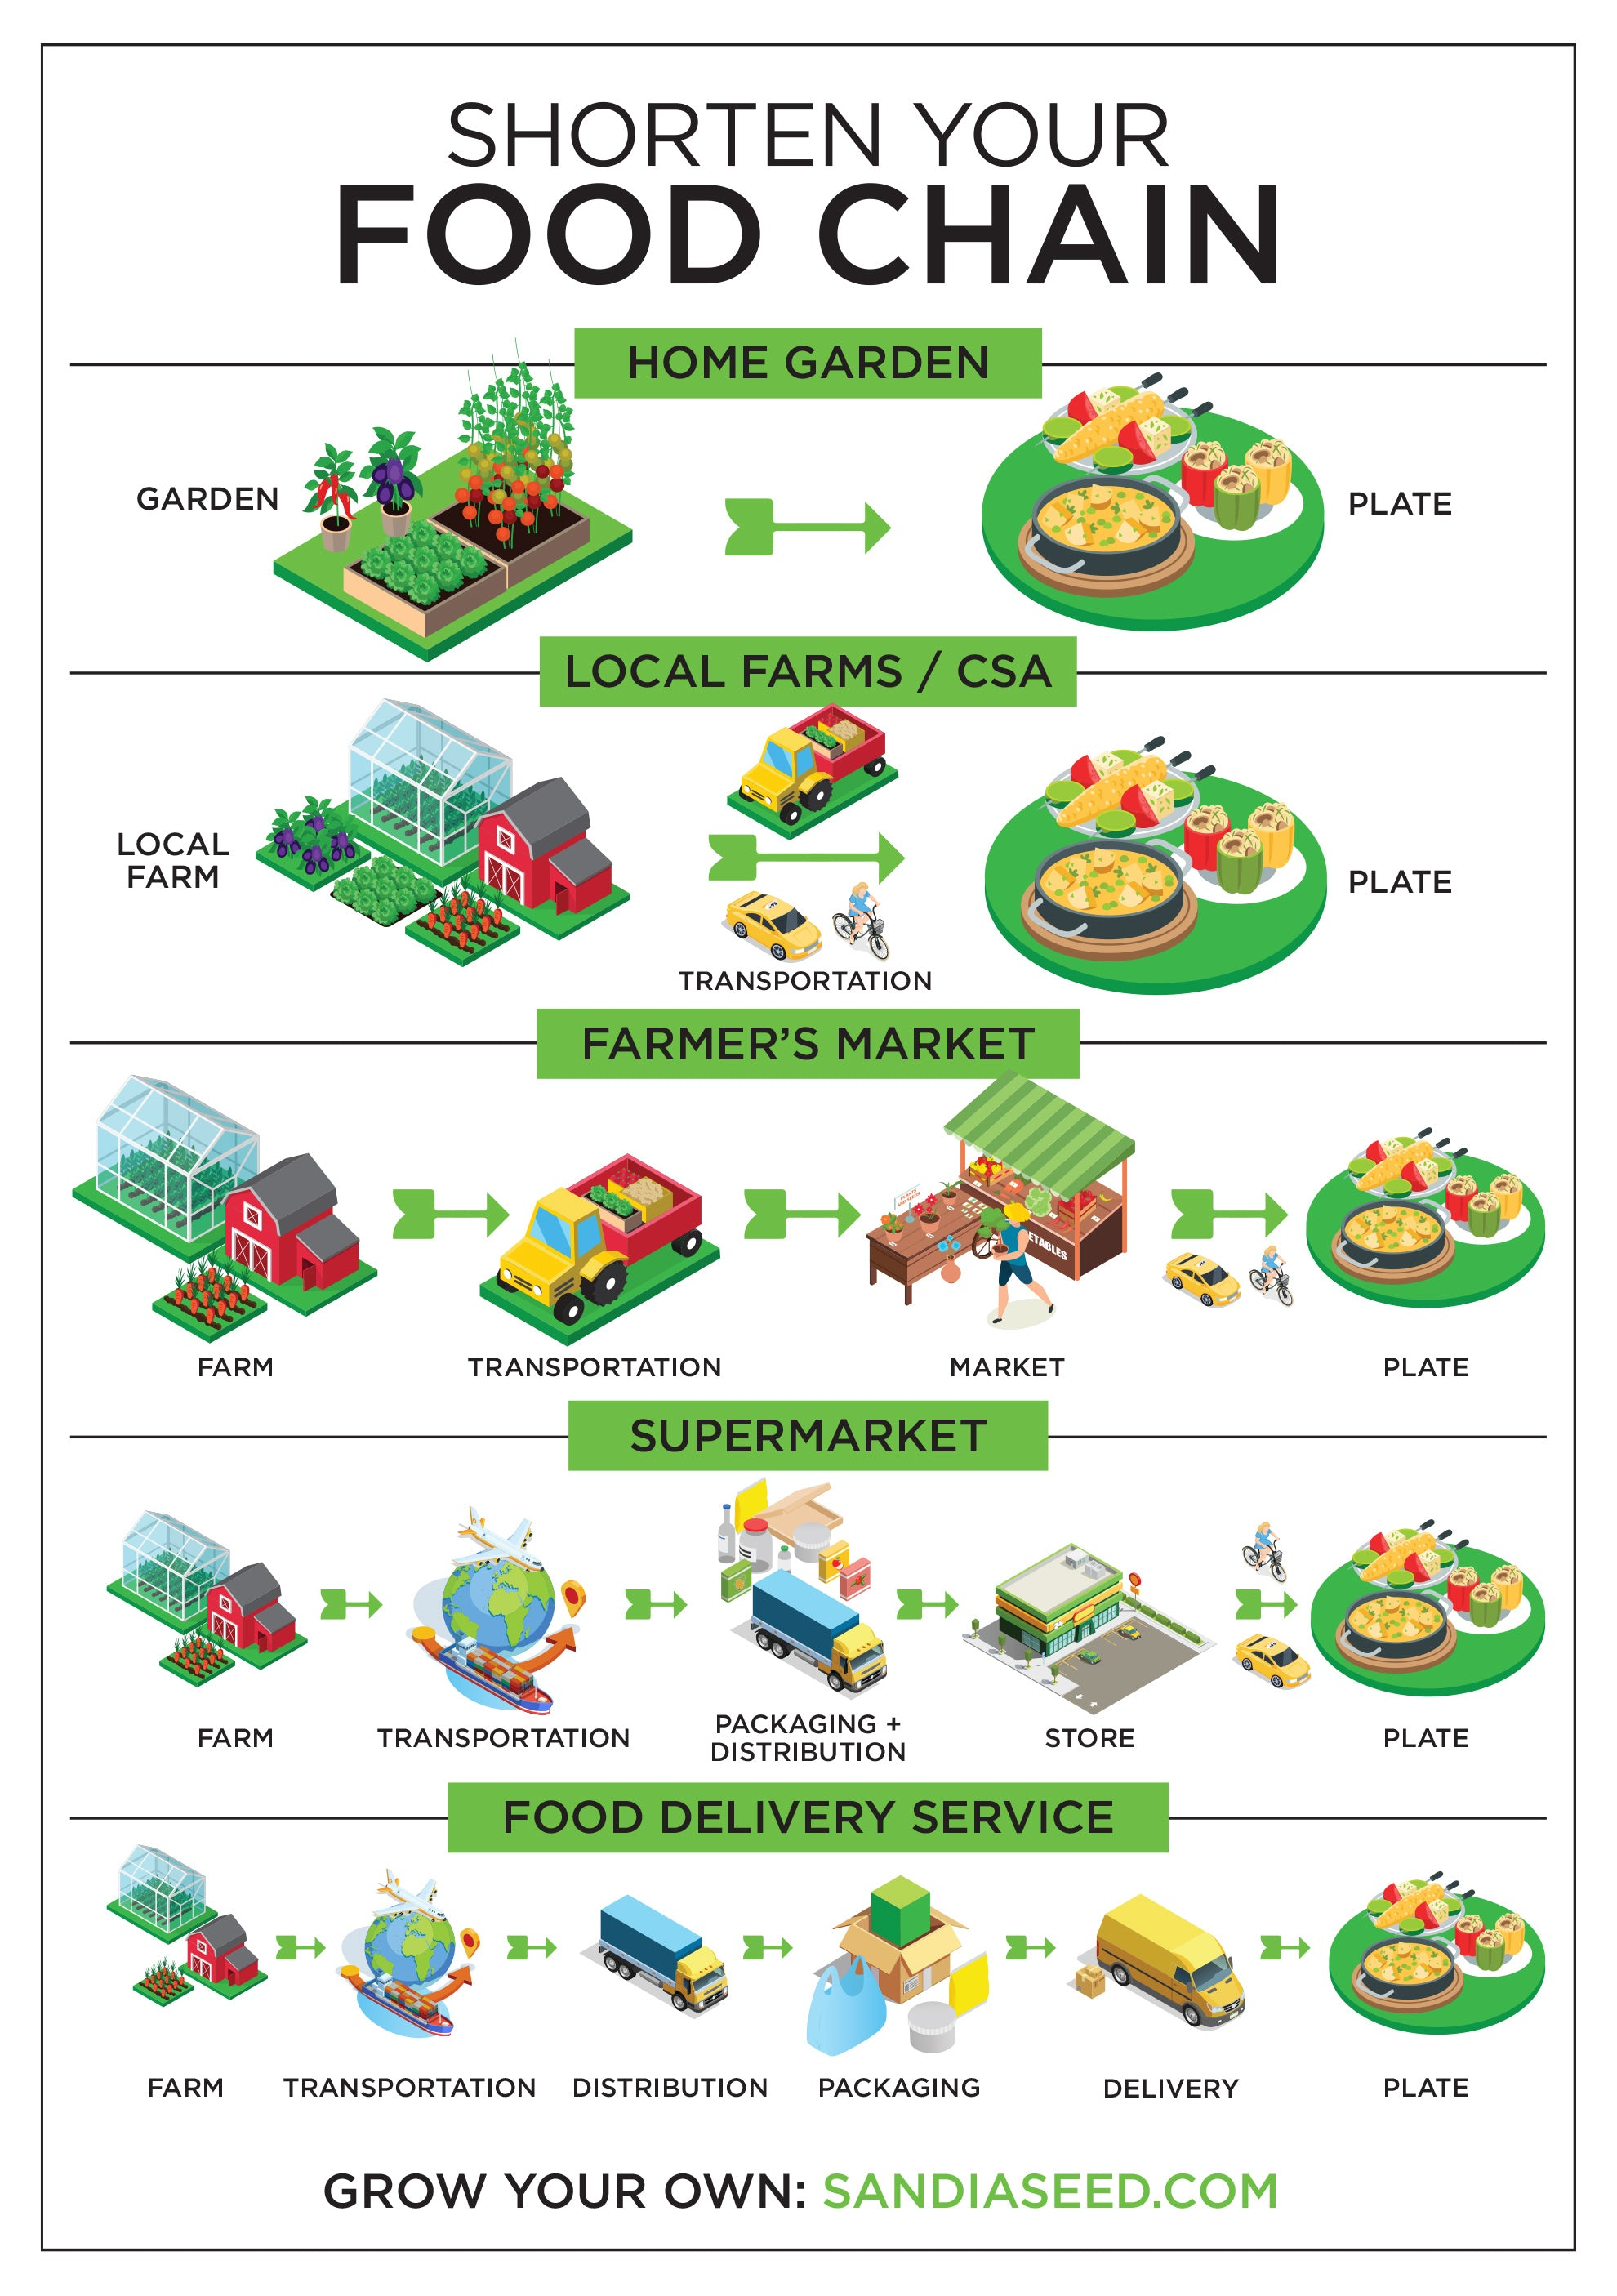 Shorten your Food Chain Infographic from SandiaSeed.com - Happy Earth Day!